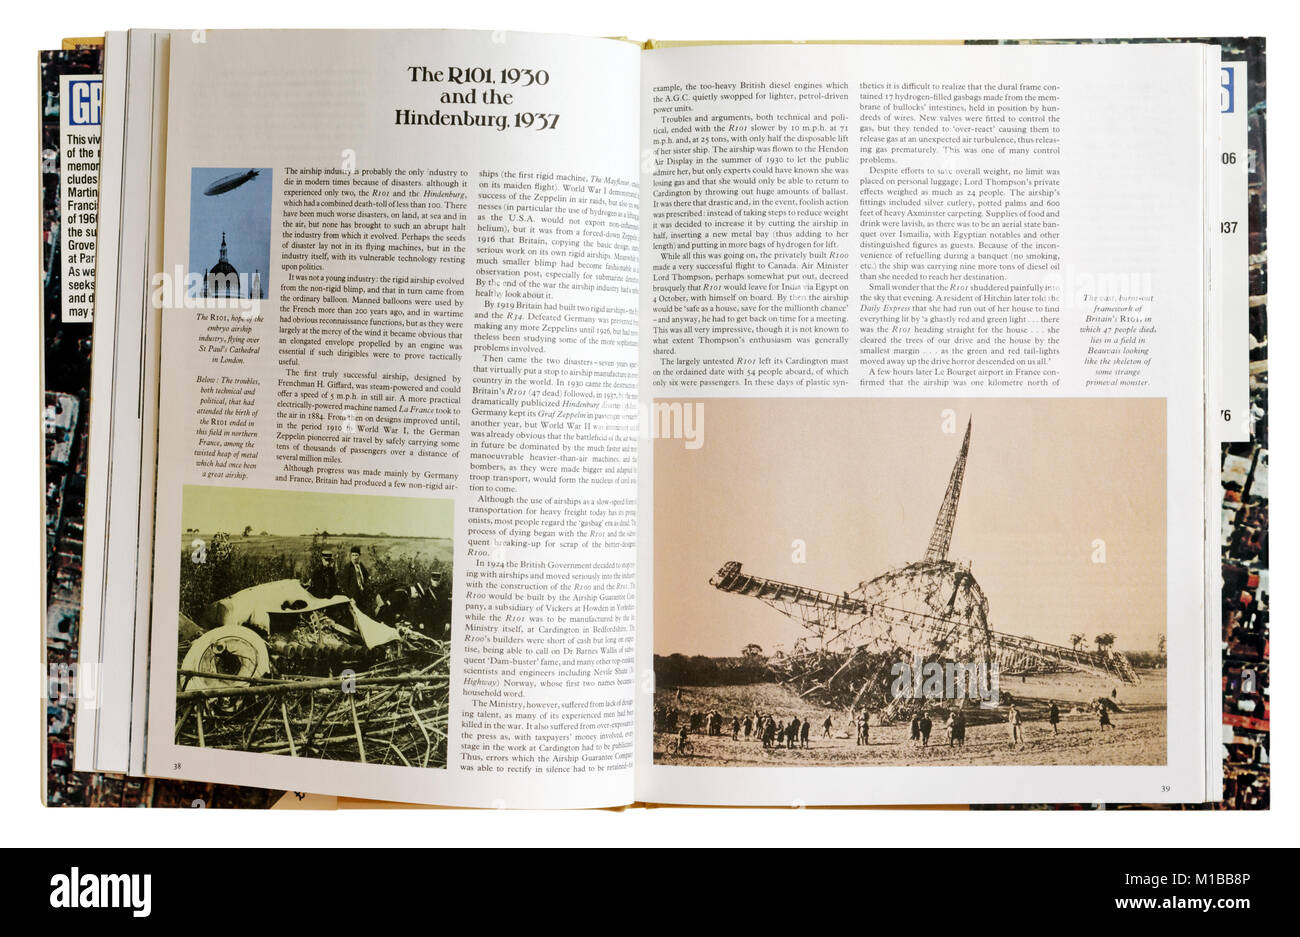 A book of disasters open to the page about the crash of R101 and the Hindenburg Stock Photo